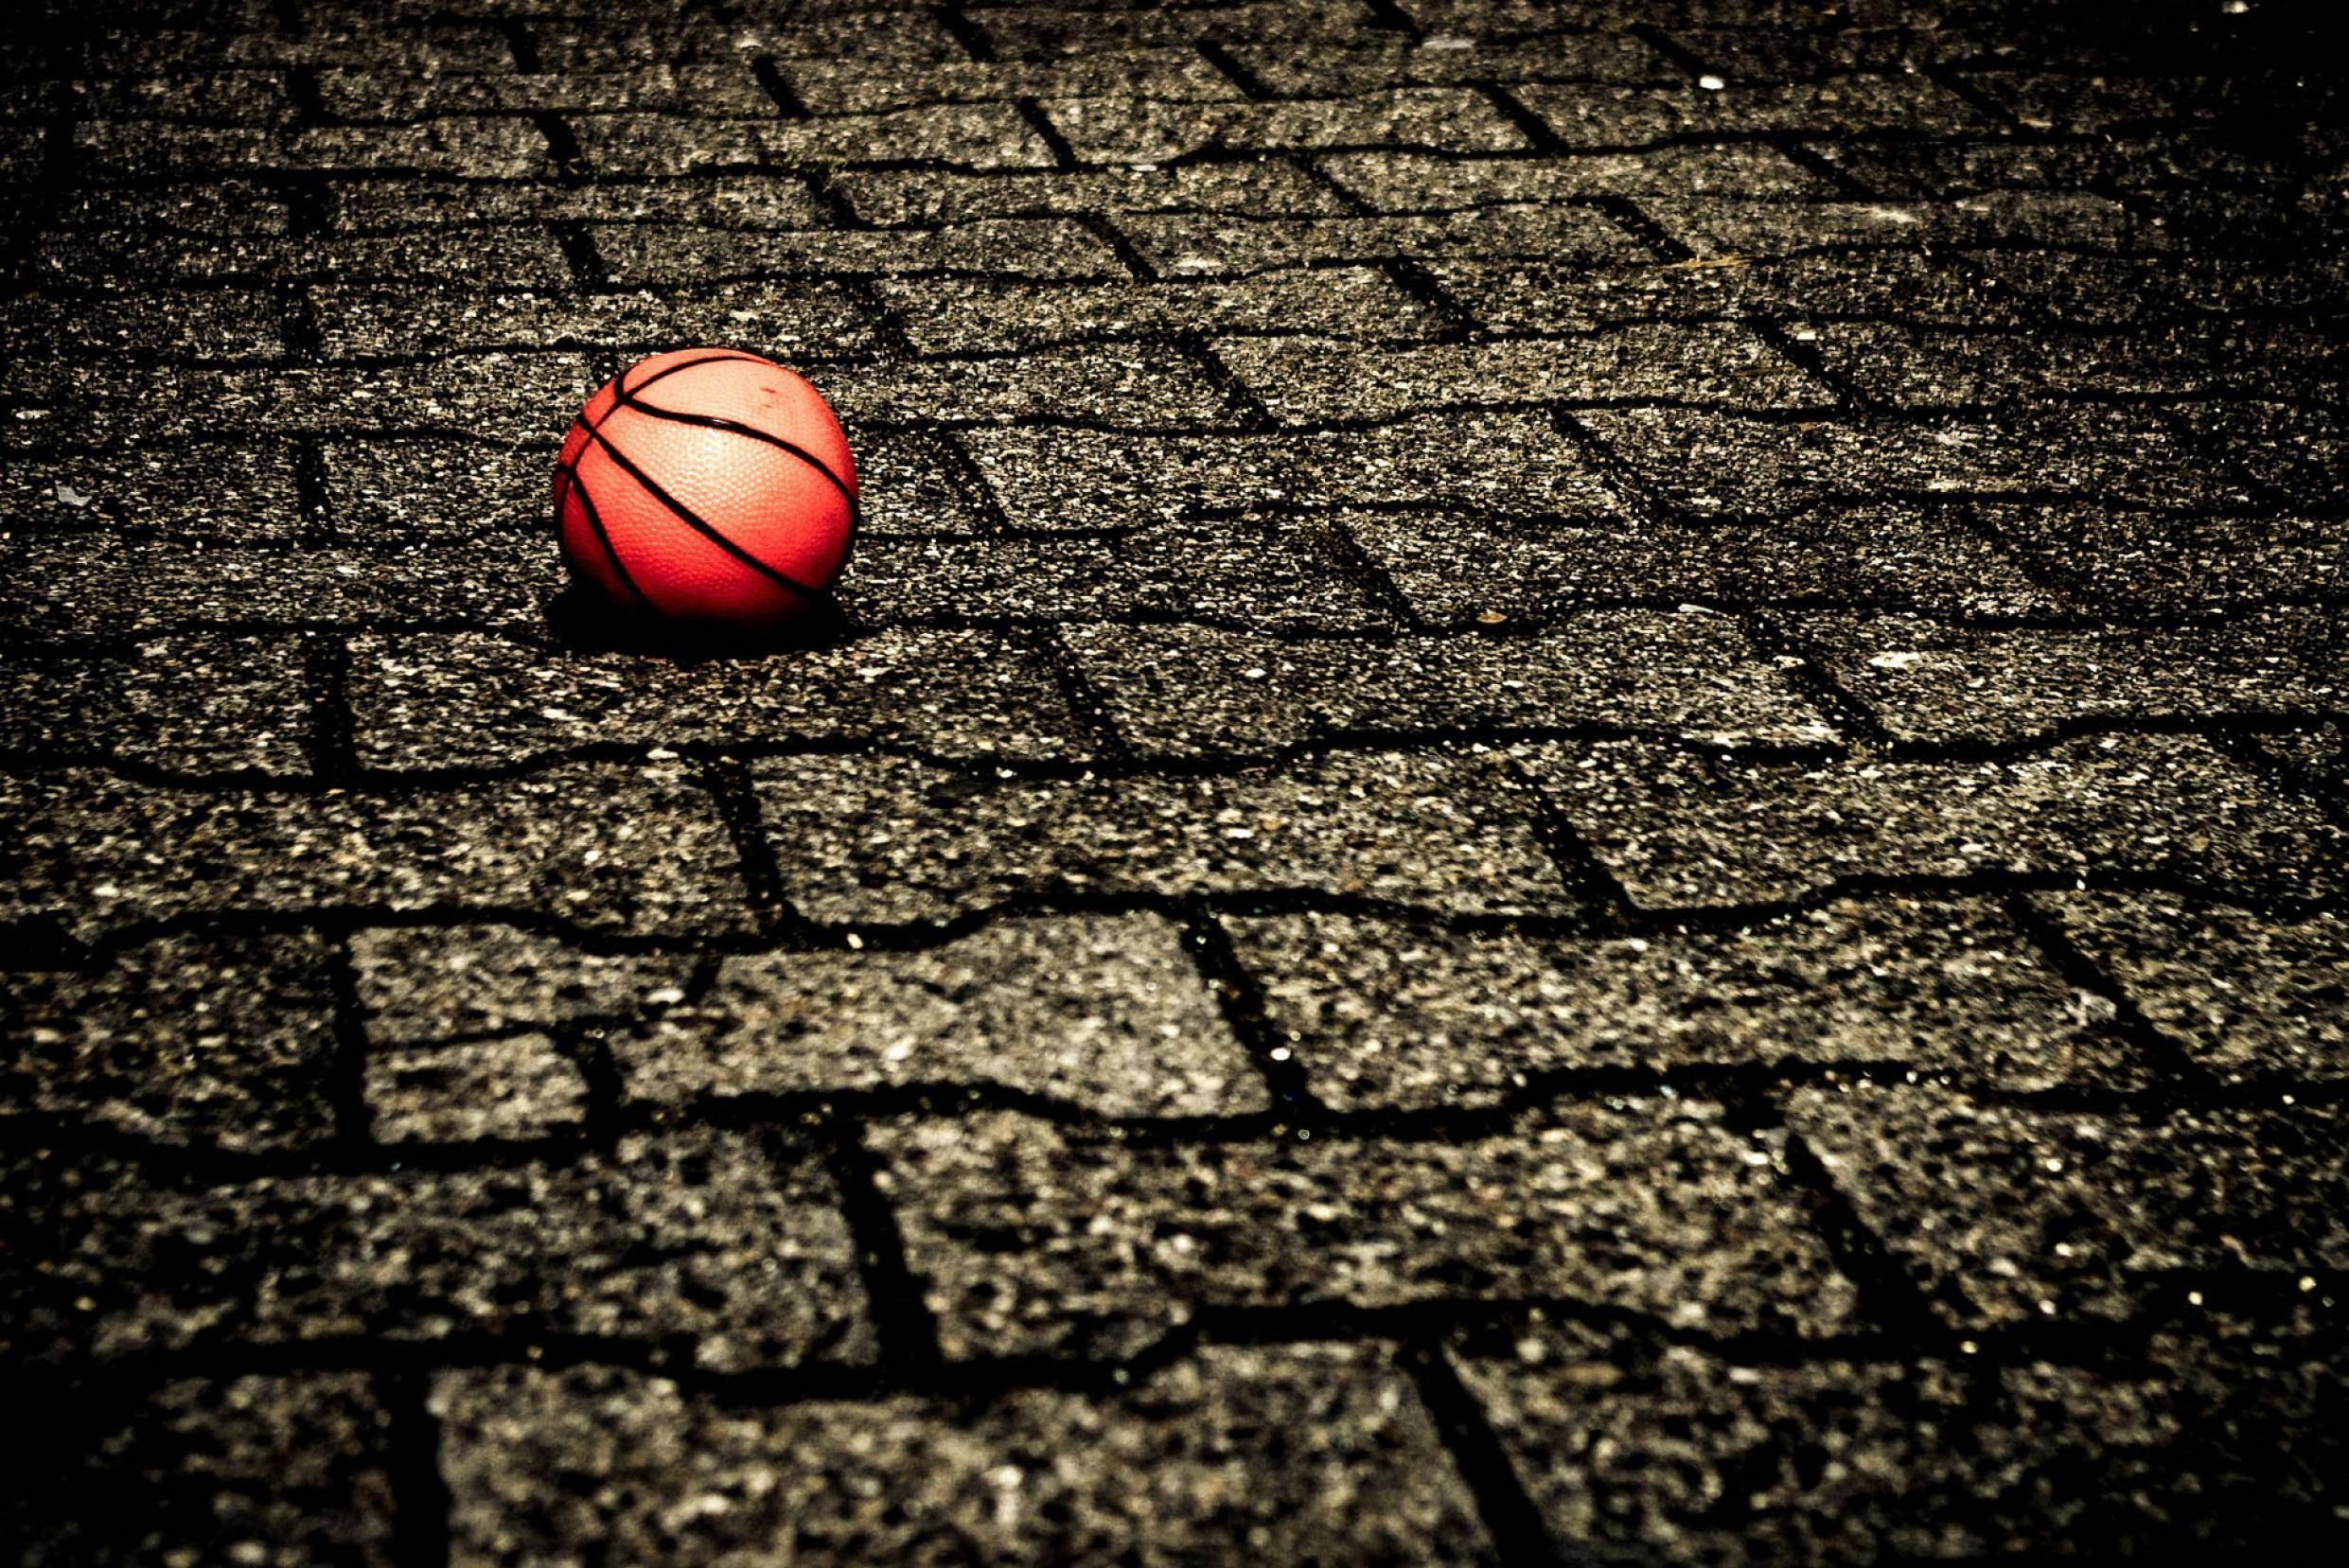 Nike Basketball Wallpapers - Wallpaper Cave